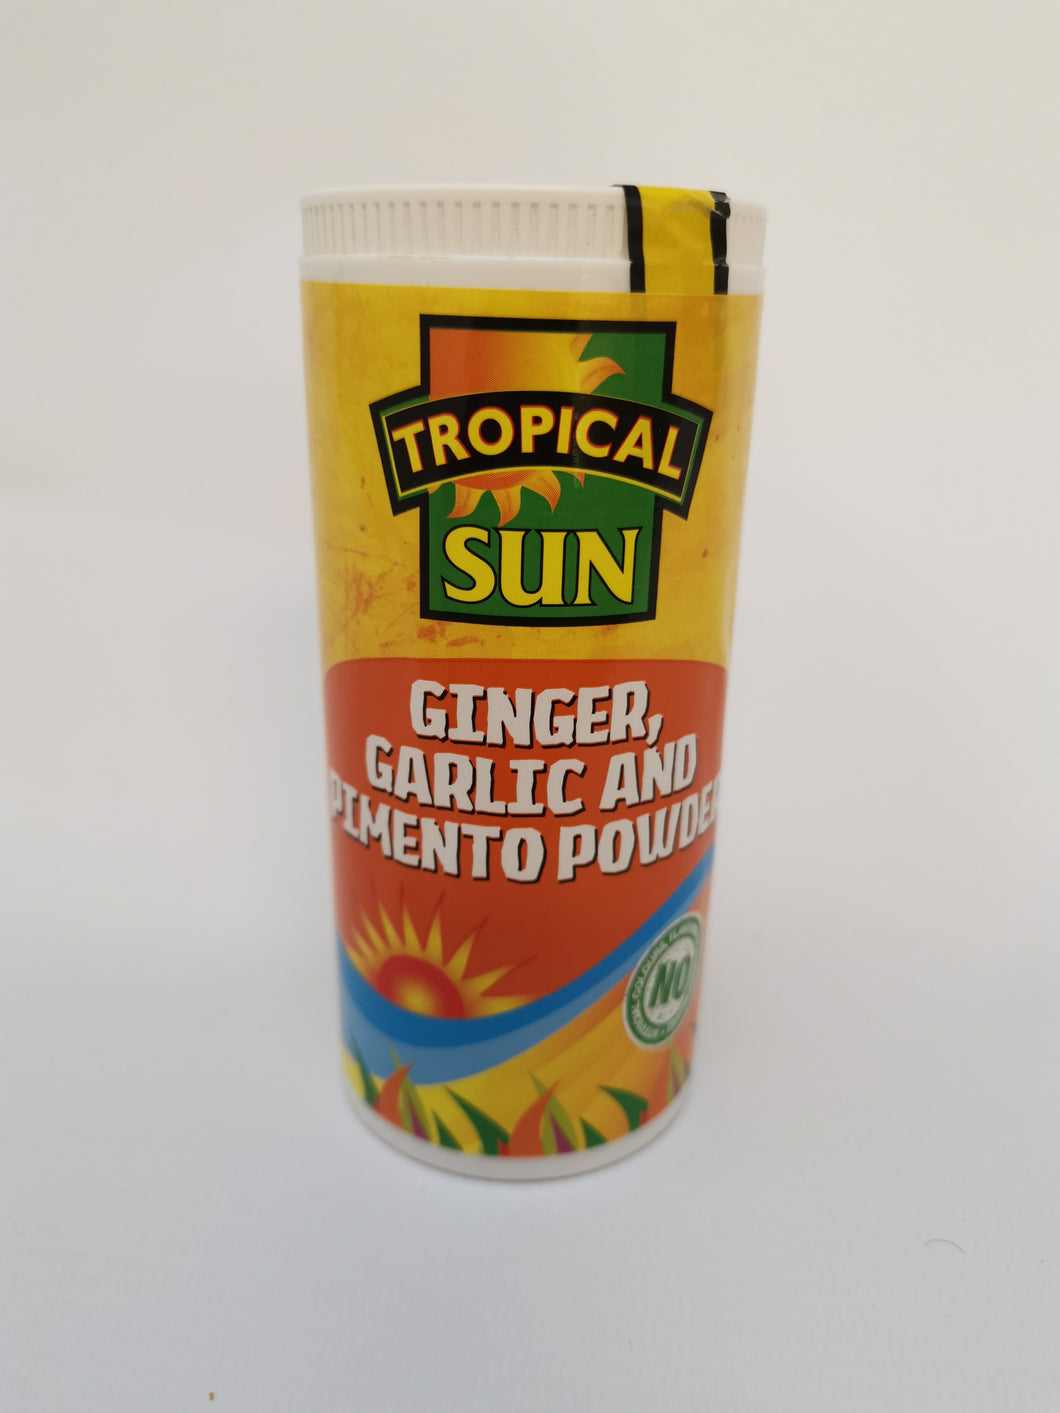 Tropical Sun Ginger, Garlic and Pimento Powder 100g